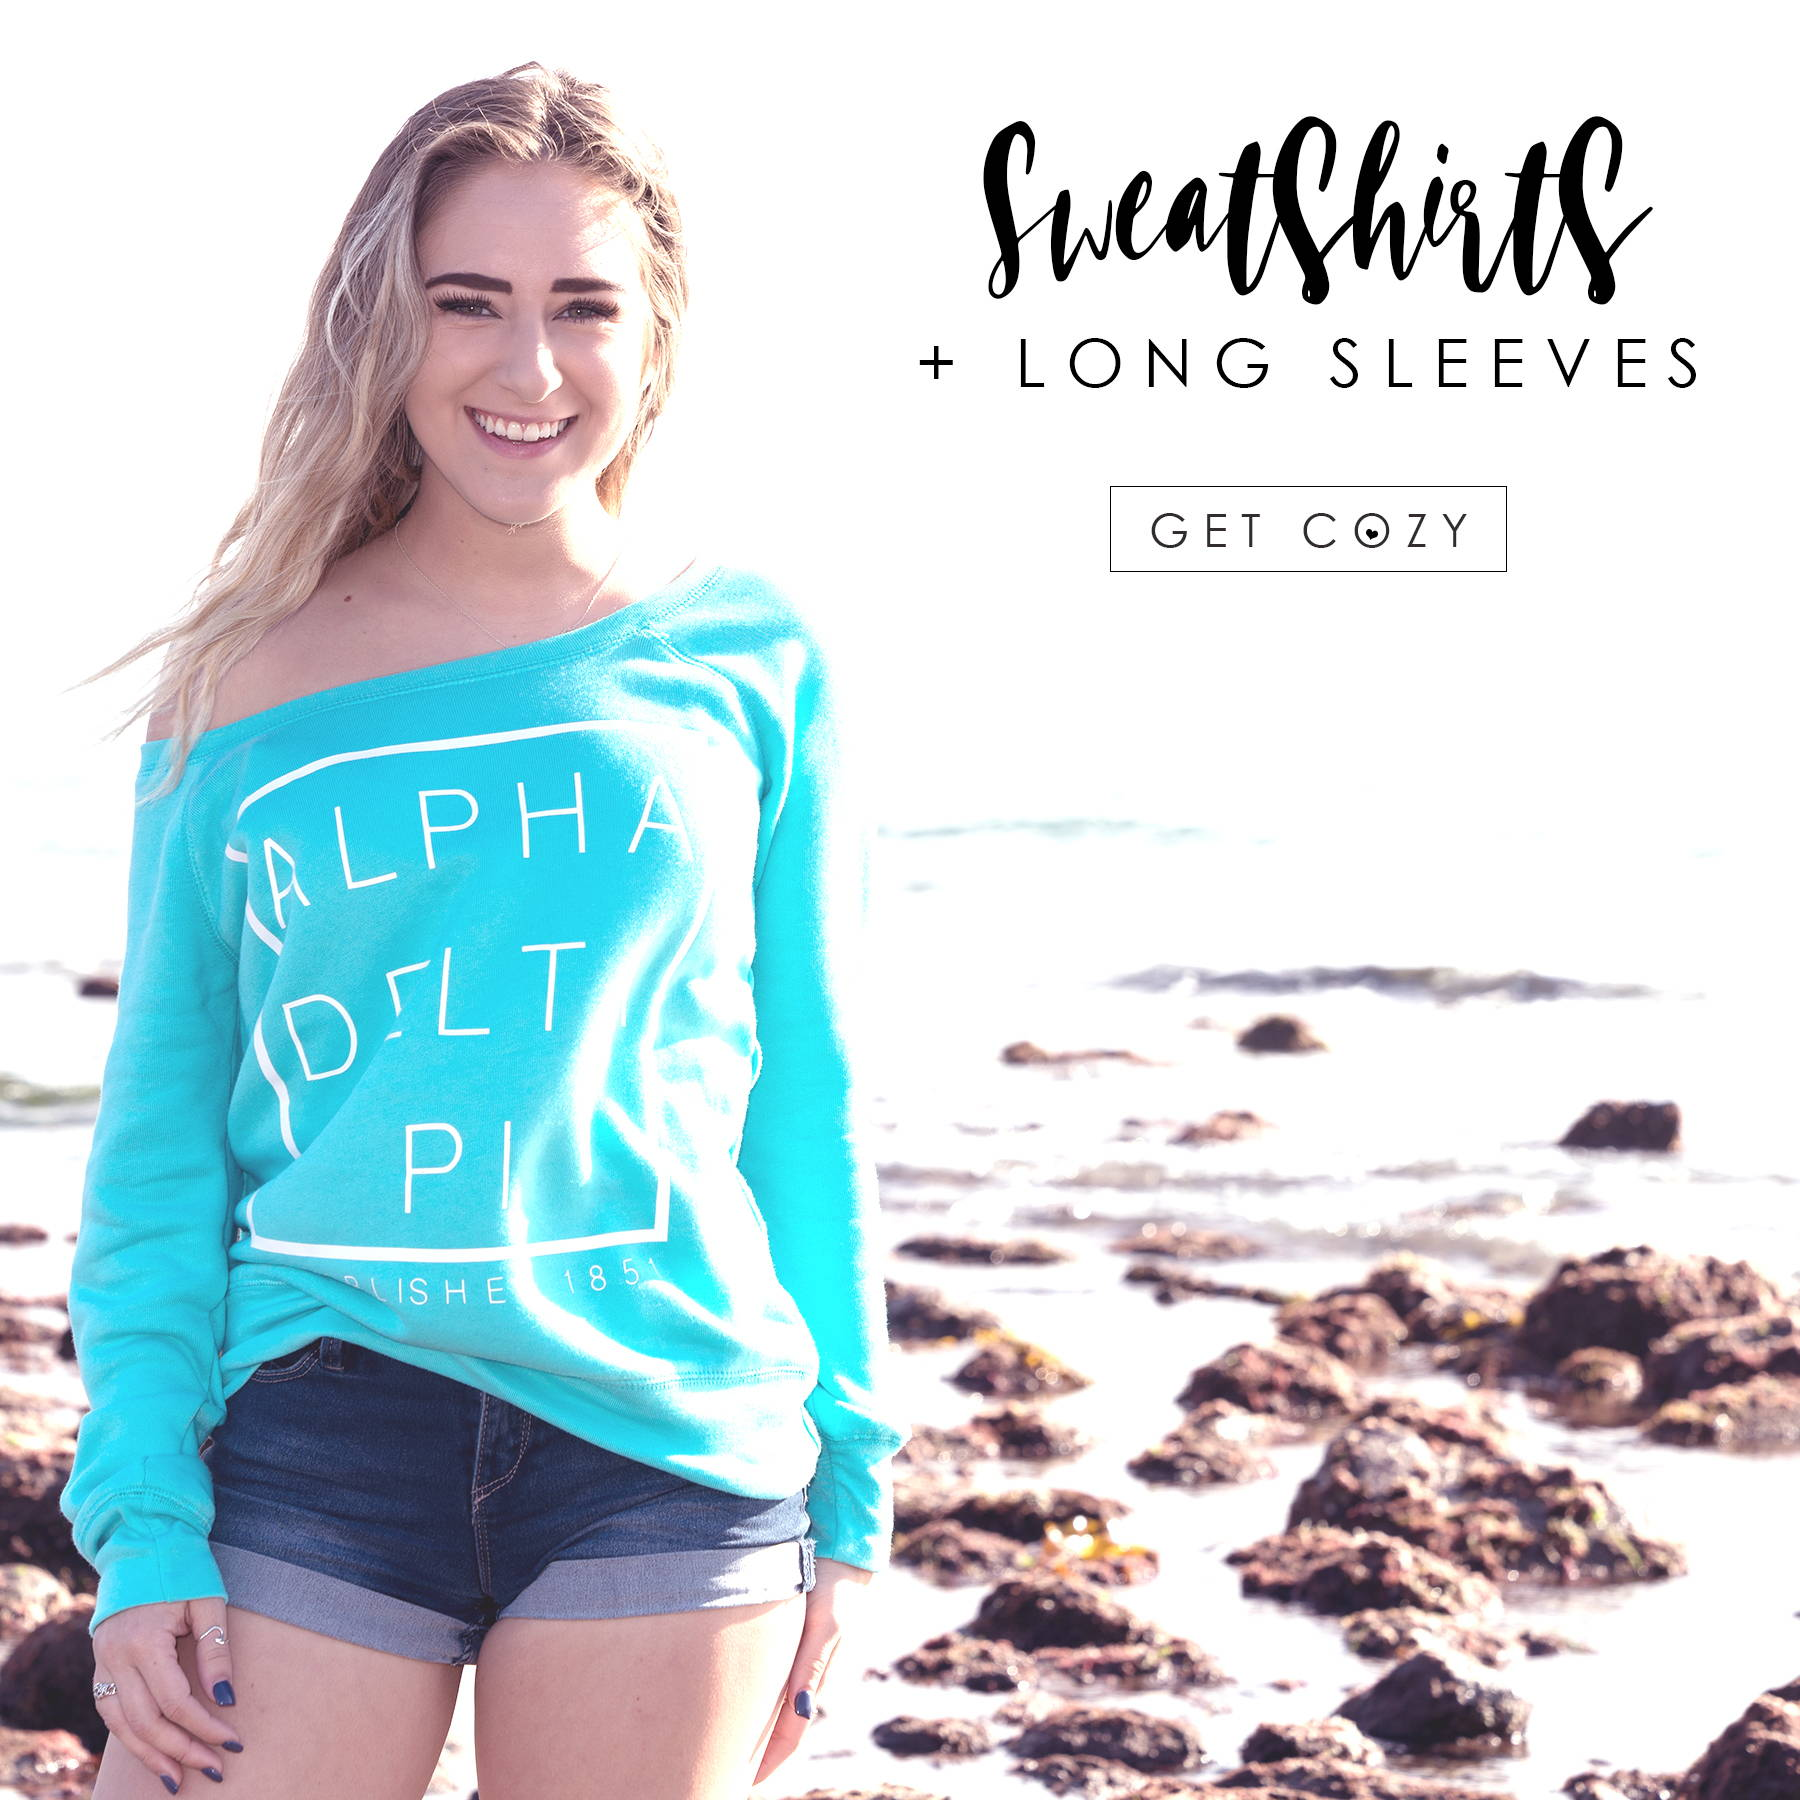 sorority sweatshirts